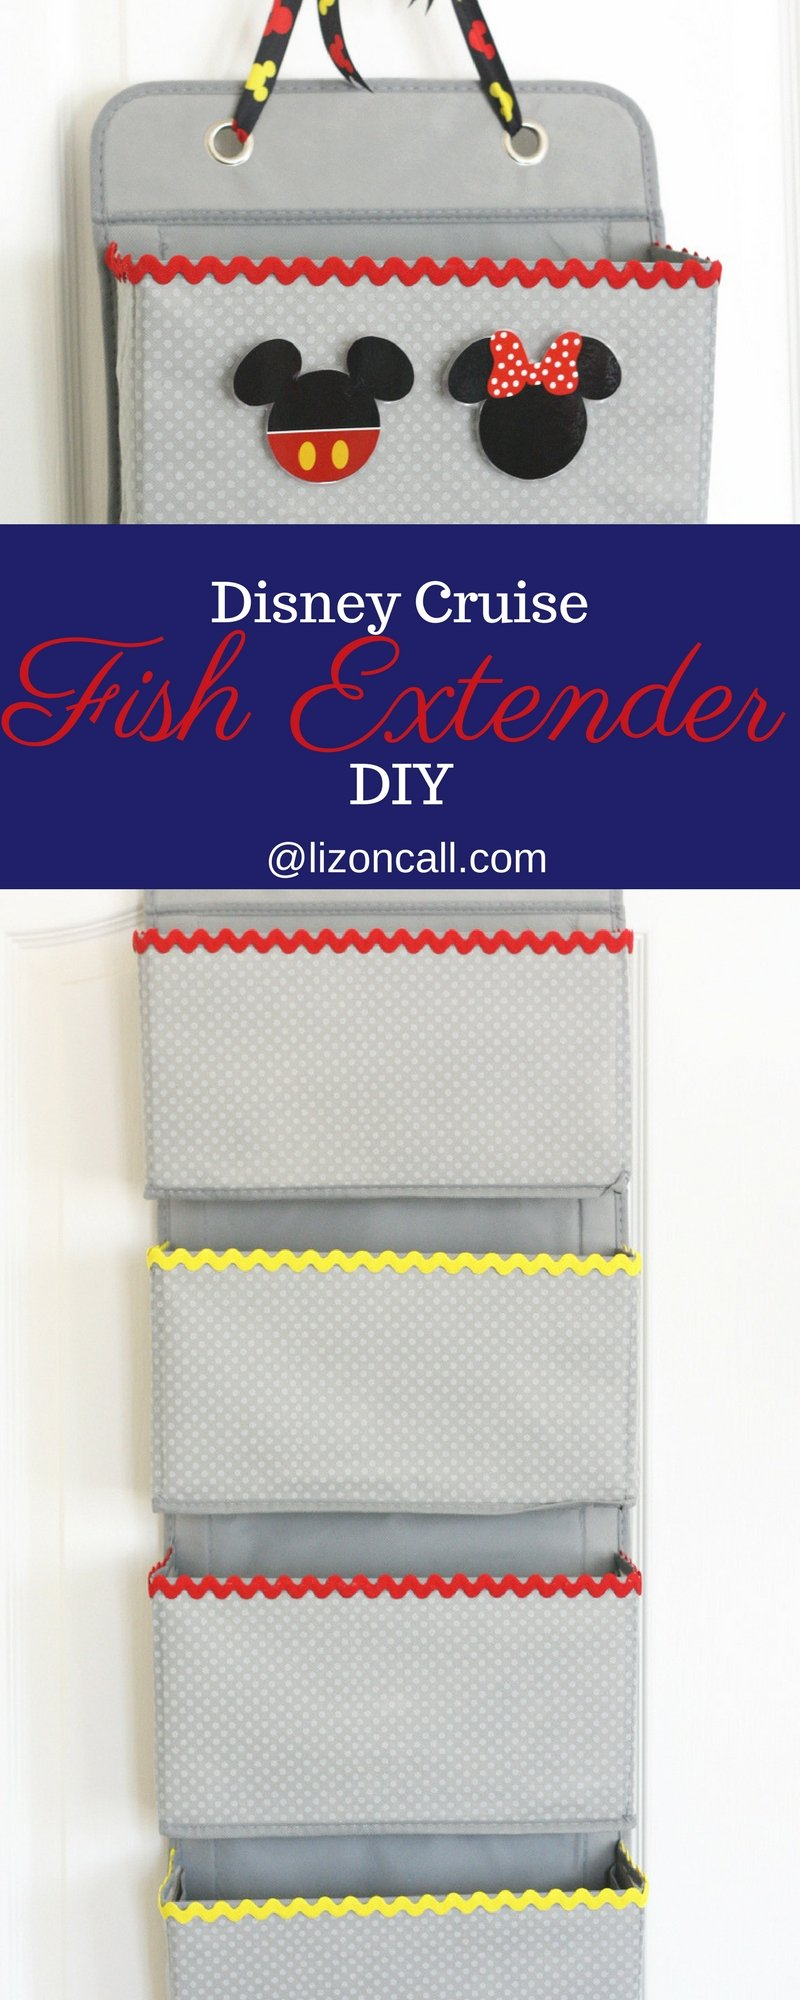 Headed on a Disney Cruise soon?  Make this no sew Disney Cruise fish extender DIY to take part in some added extra magic while on board.  Kids and adults love participating in the Disney Cruise Fish Extender program. #fishextenderdiy #disneycruise